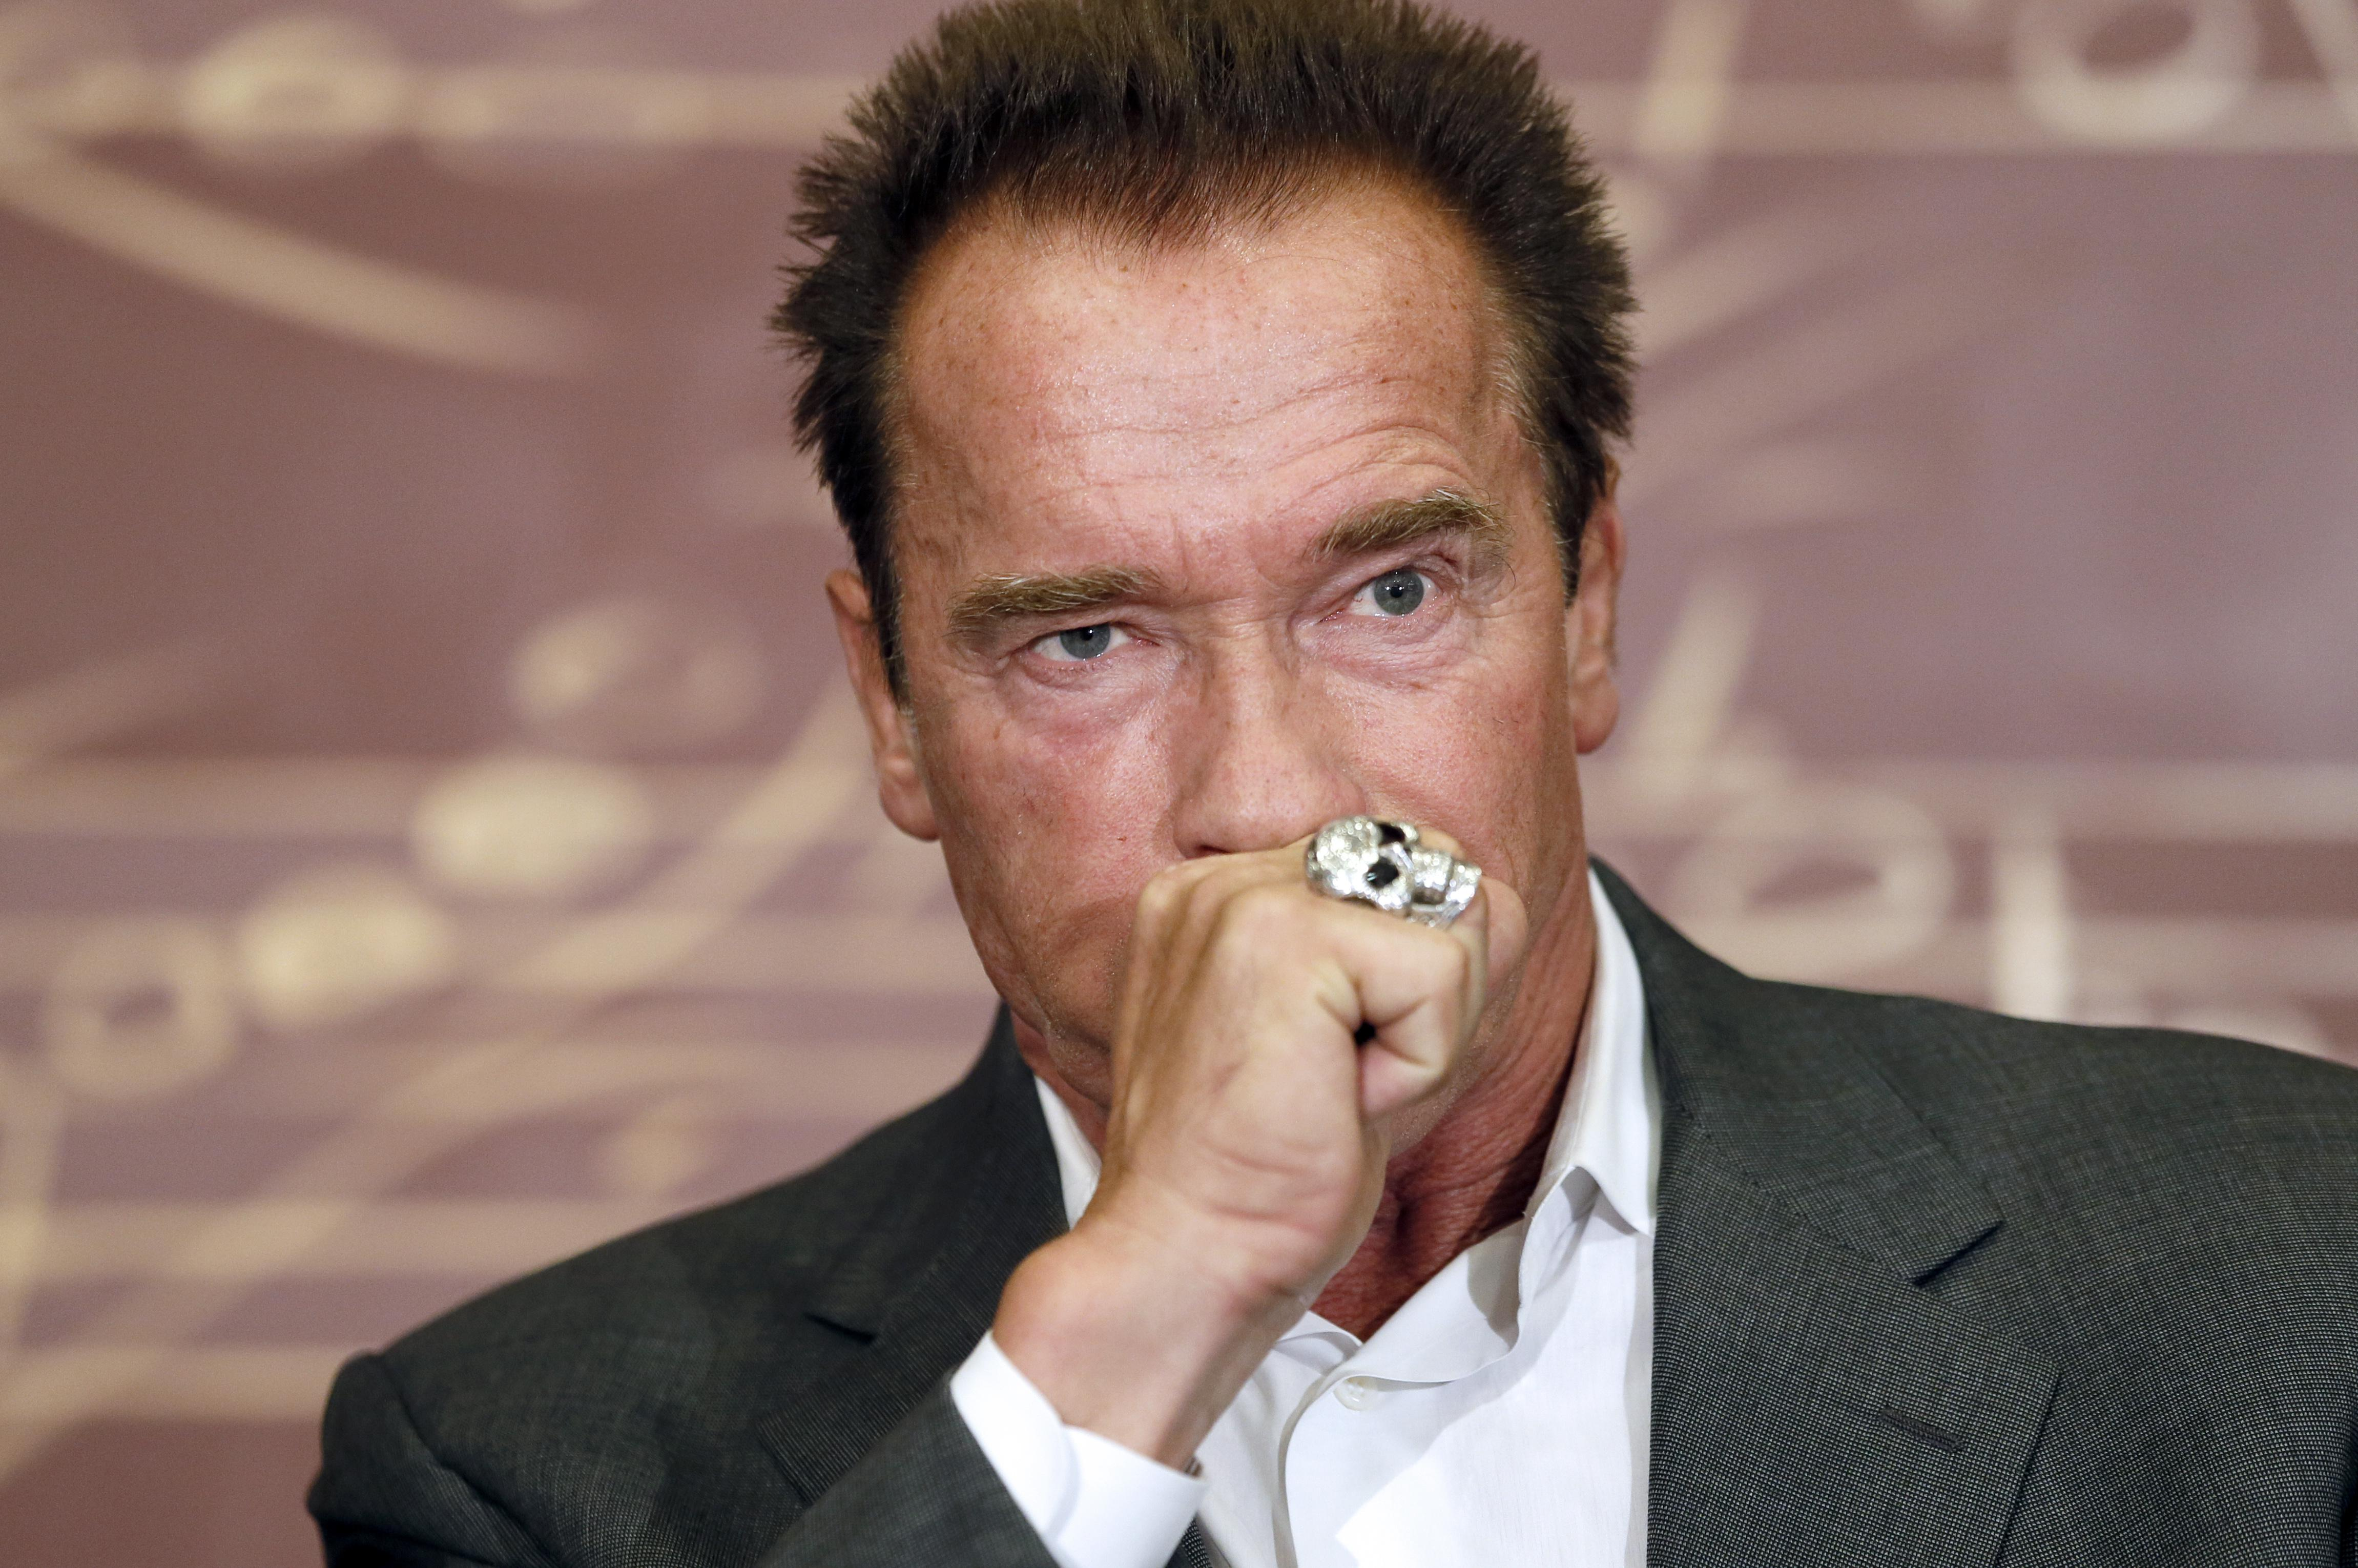 FRANCE-USA-PEOPLE-SCHWARZENEGGER